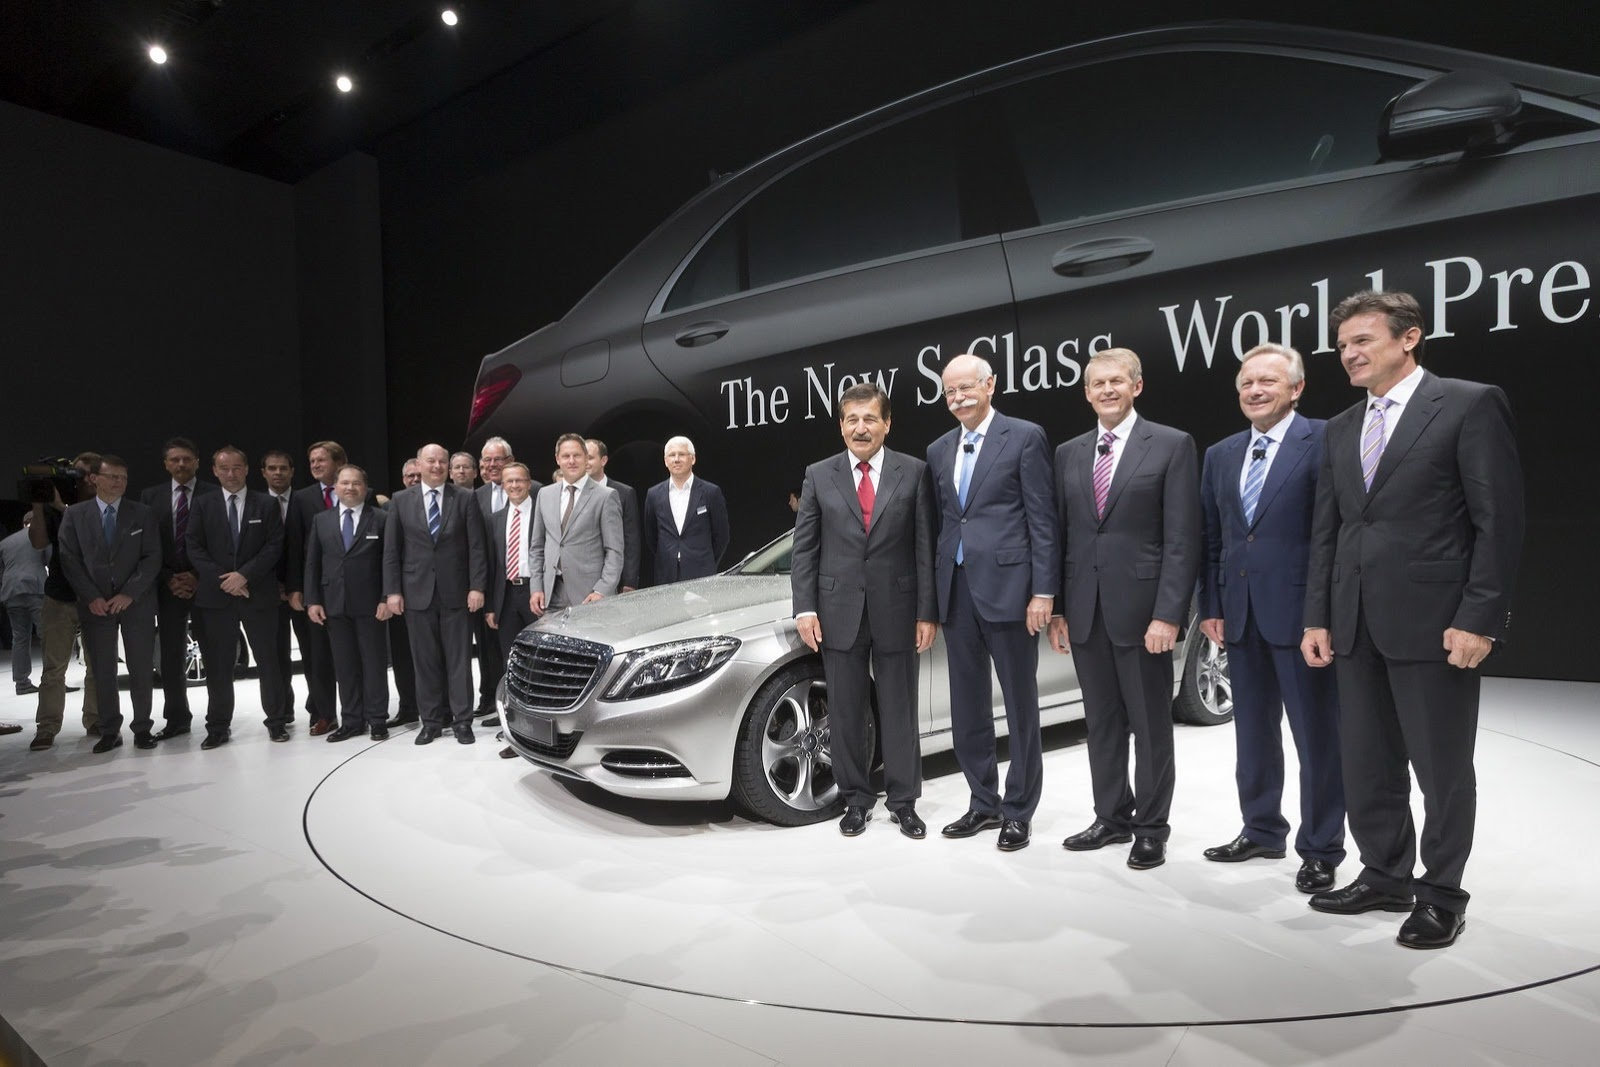 2014 Mercedes Benz S-Class Reveal Event - SMADE MEDIA (11)